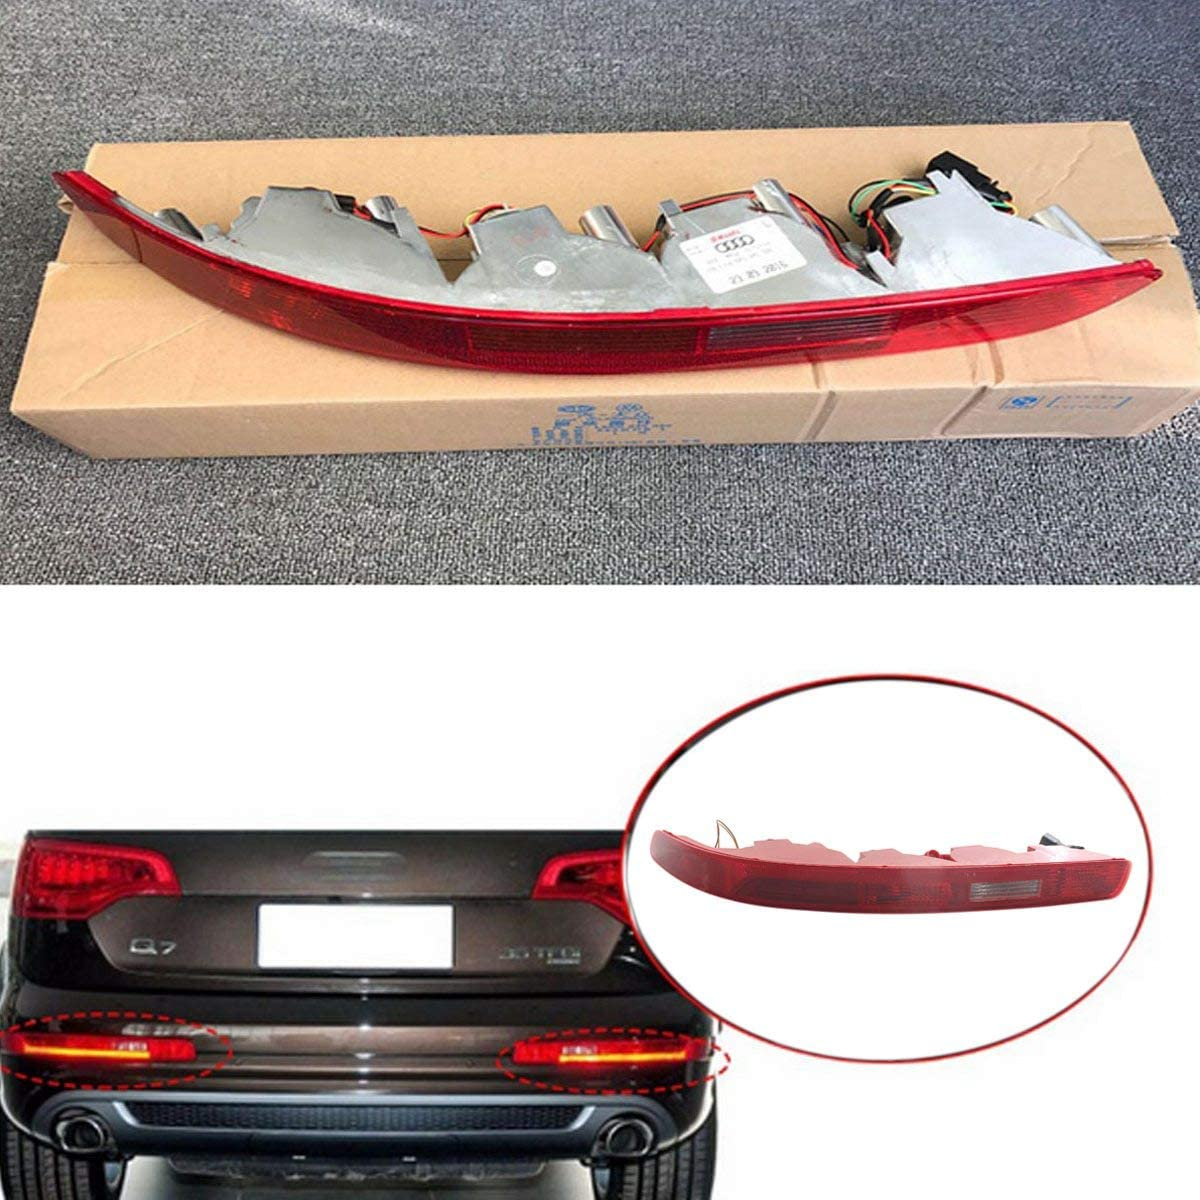 TOOGOO Usa Type Driver Right Side Lower Bumper Reflector Tail Light Reverse Stop Lamp With Led Bulbs Rear For Audi Q7 2007-2015 4L0945096A